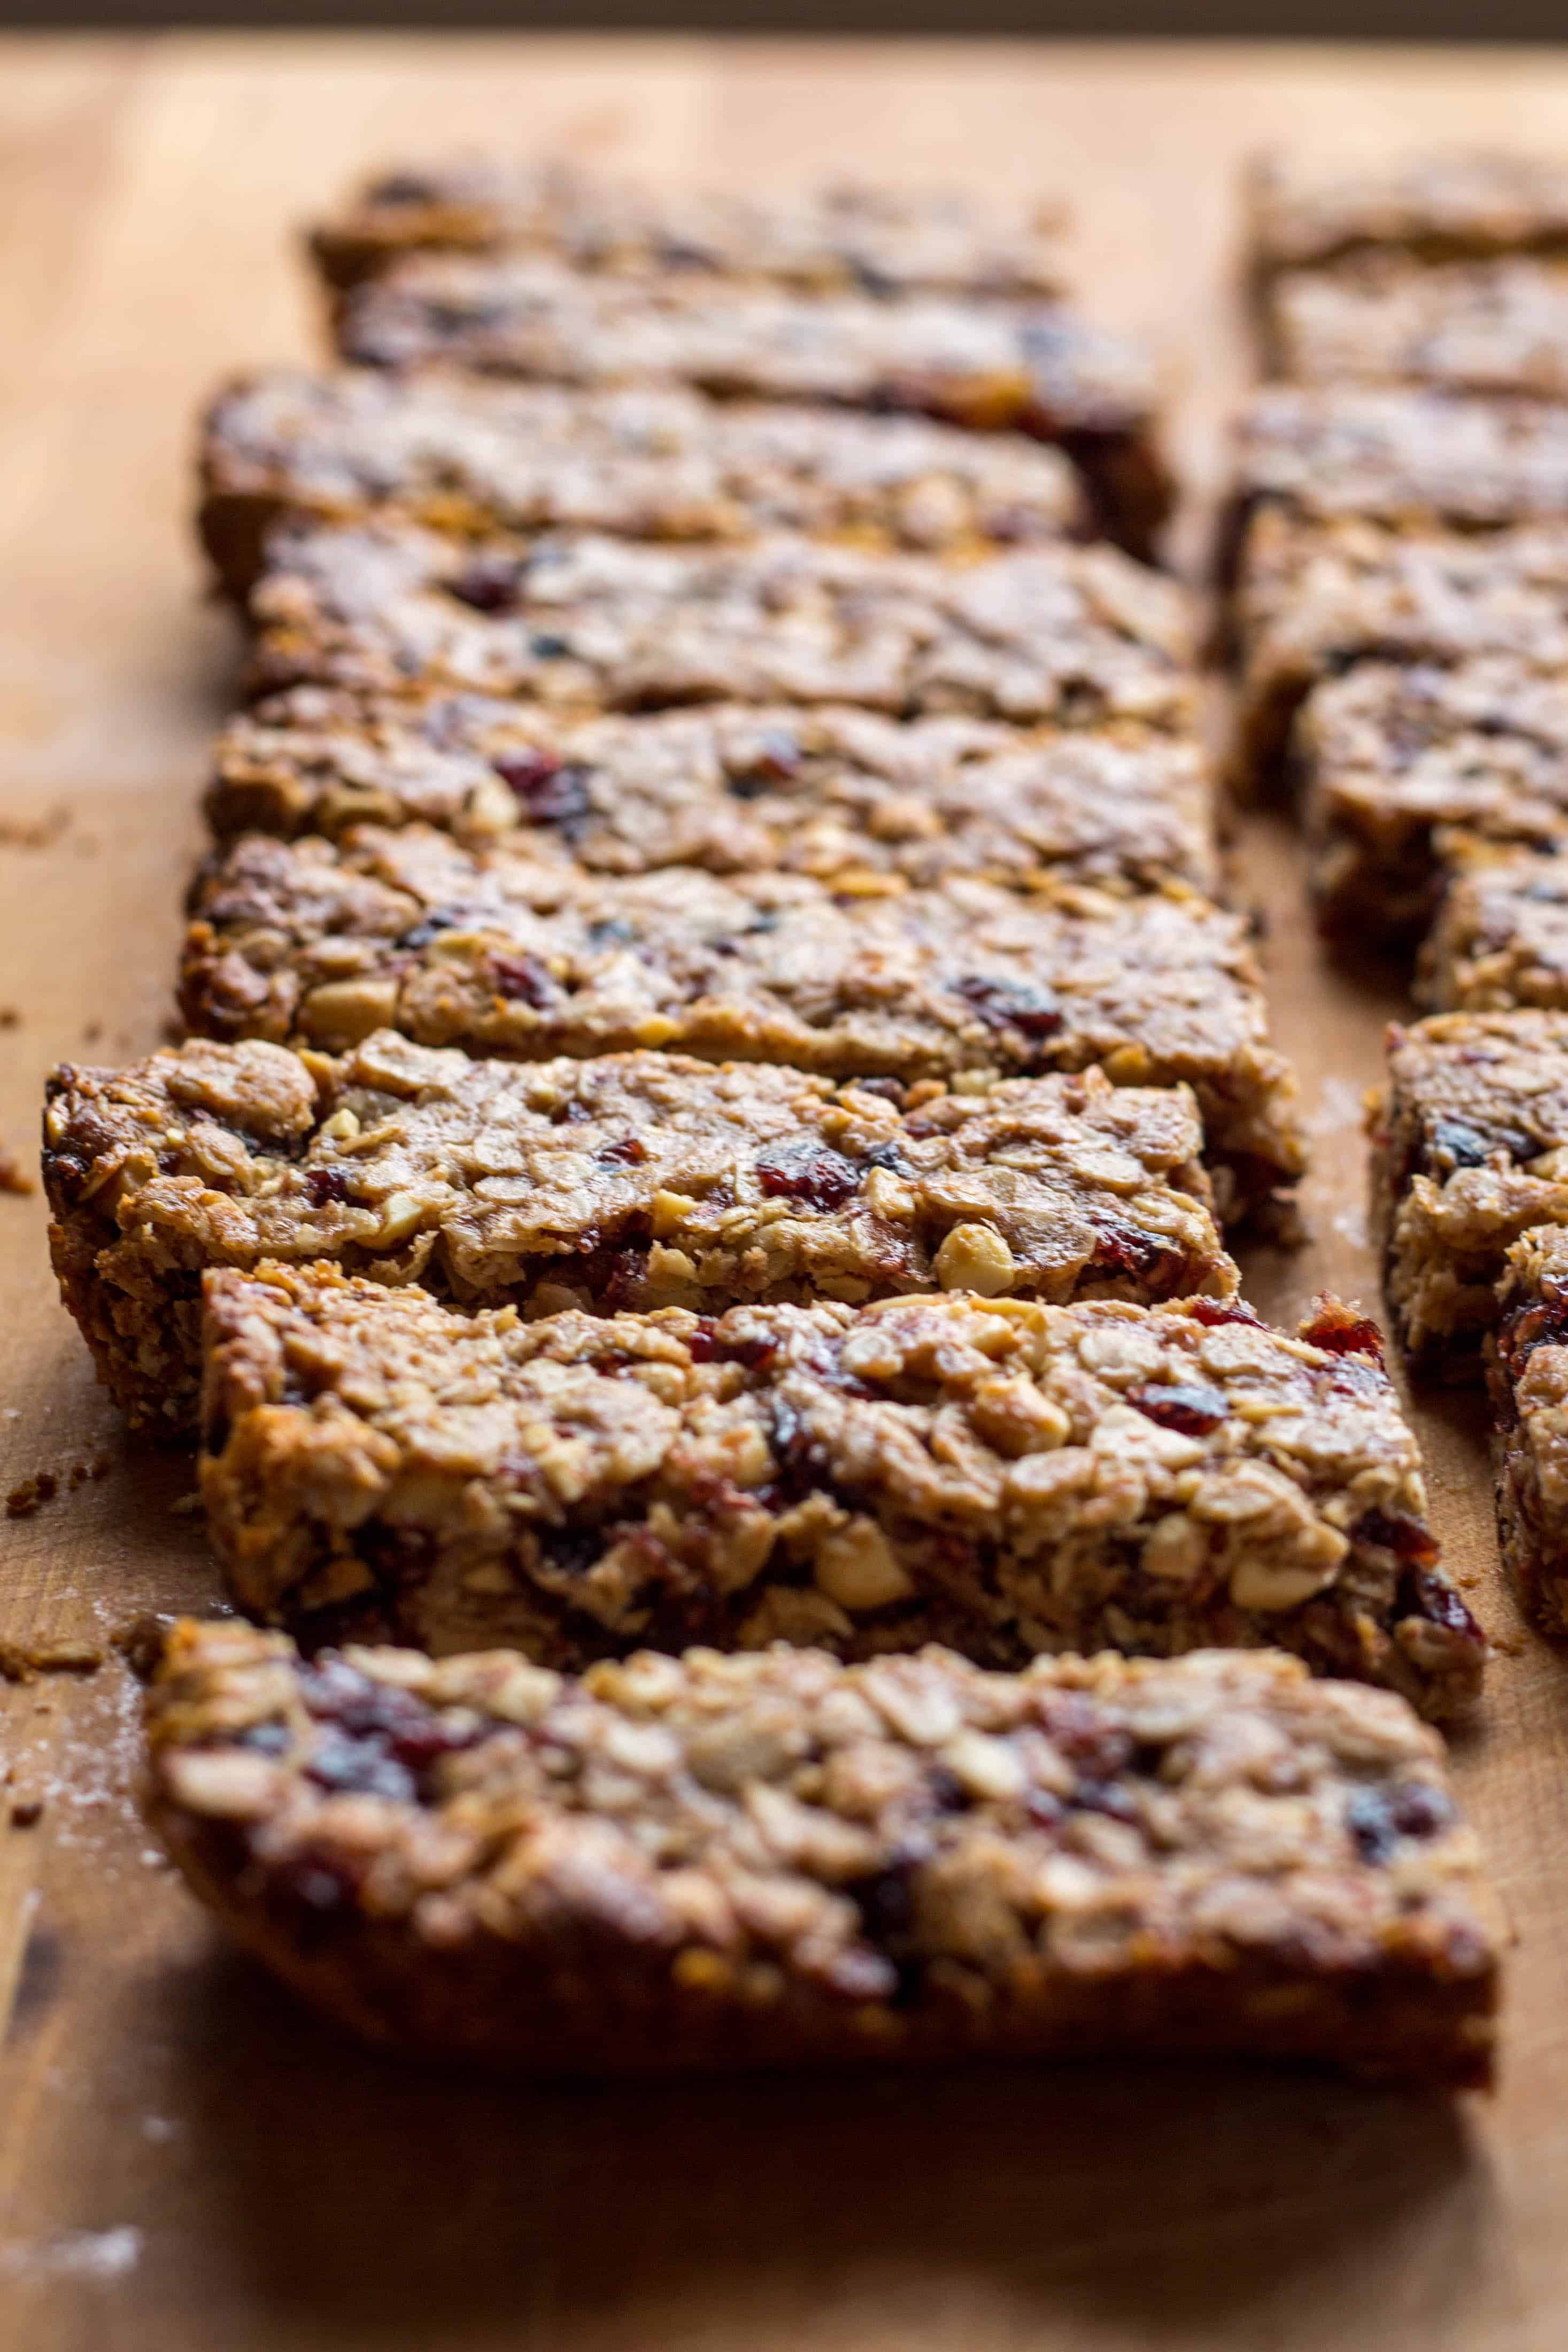 Peanut Butter and Jelly Granola Bars (Video!)